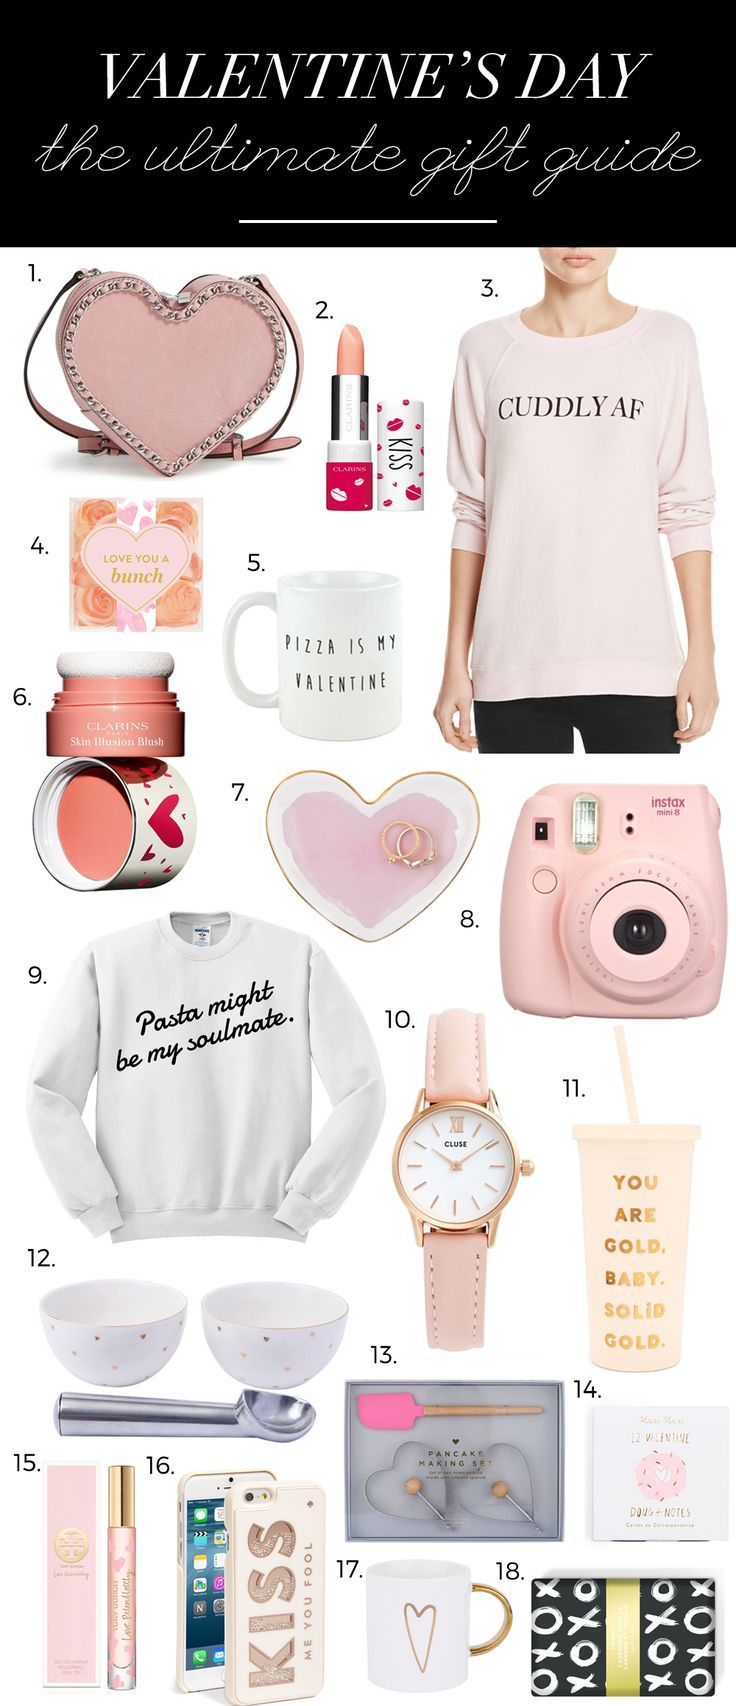 Valentines Day Ideas For Her Valentines Gifts Best Valentine Gift For Her Valentines Day Presents Valentines Ideas For Her Best Valentines Day Presents ...  sc 1 st  Pinterest & Valentineu0027s Day Gifts For Everyone | GALENTINEu0027S DAY | Valentine ...